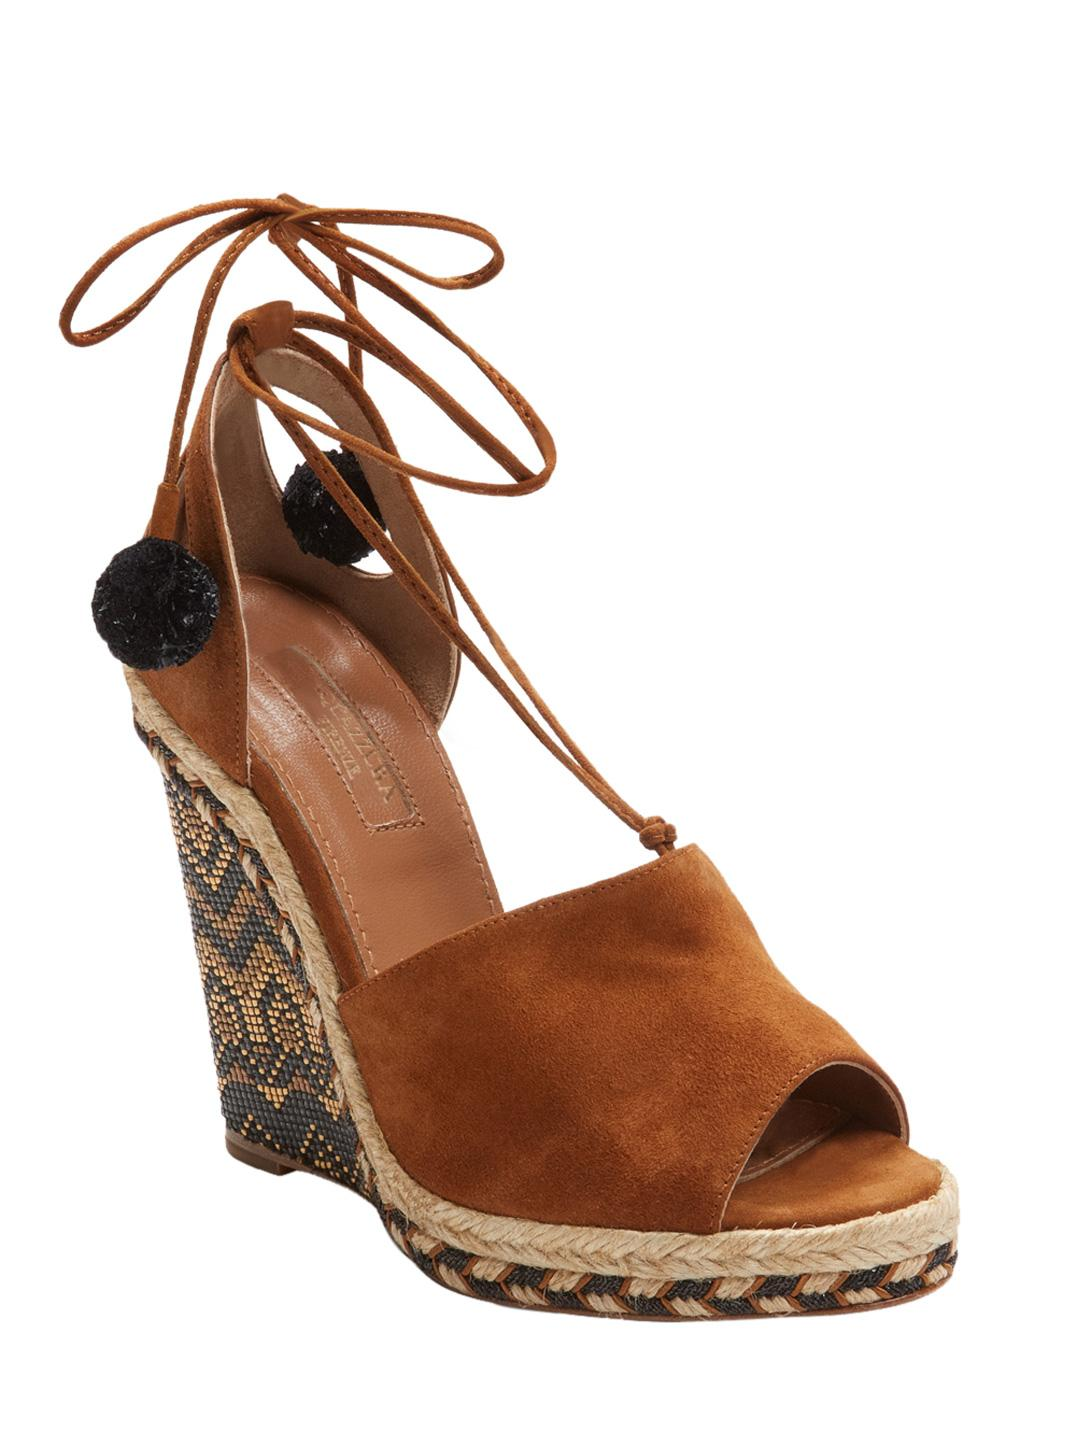 5dcced824f6 Aquazzura Palm Springs Wedge Espadrille 115 Sandal in Brown - Lyst